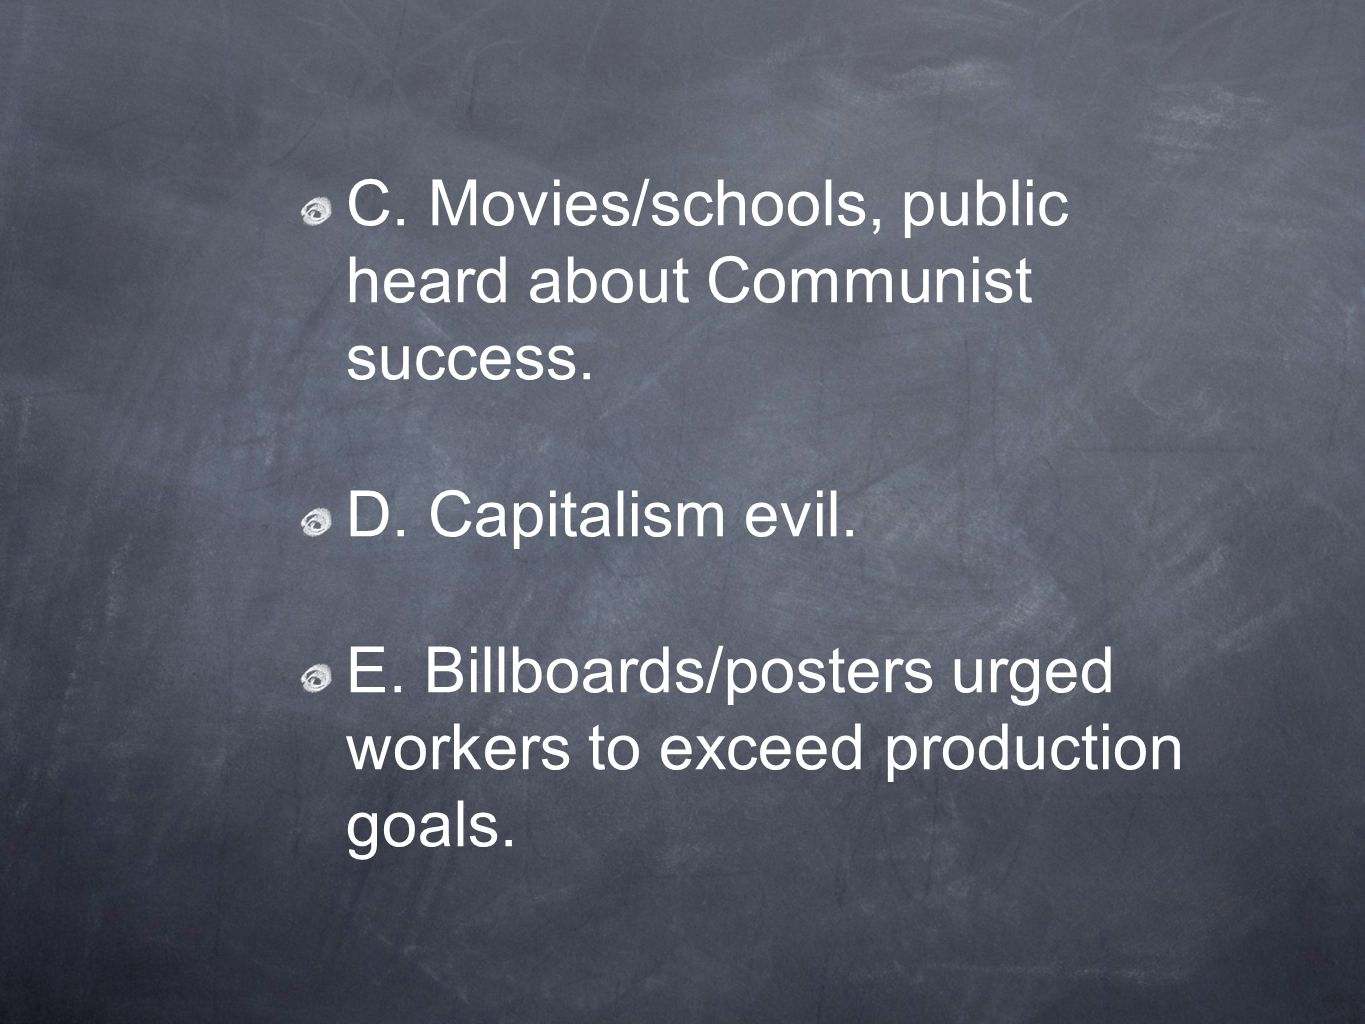 C. Movies/schools, public heard about Communist success.